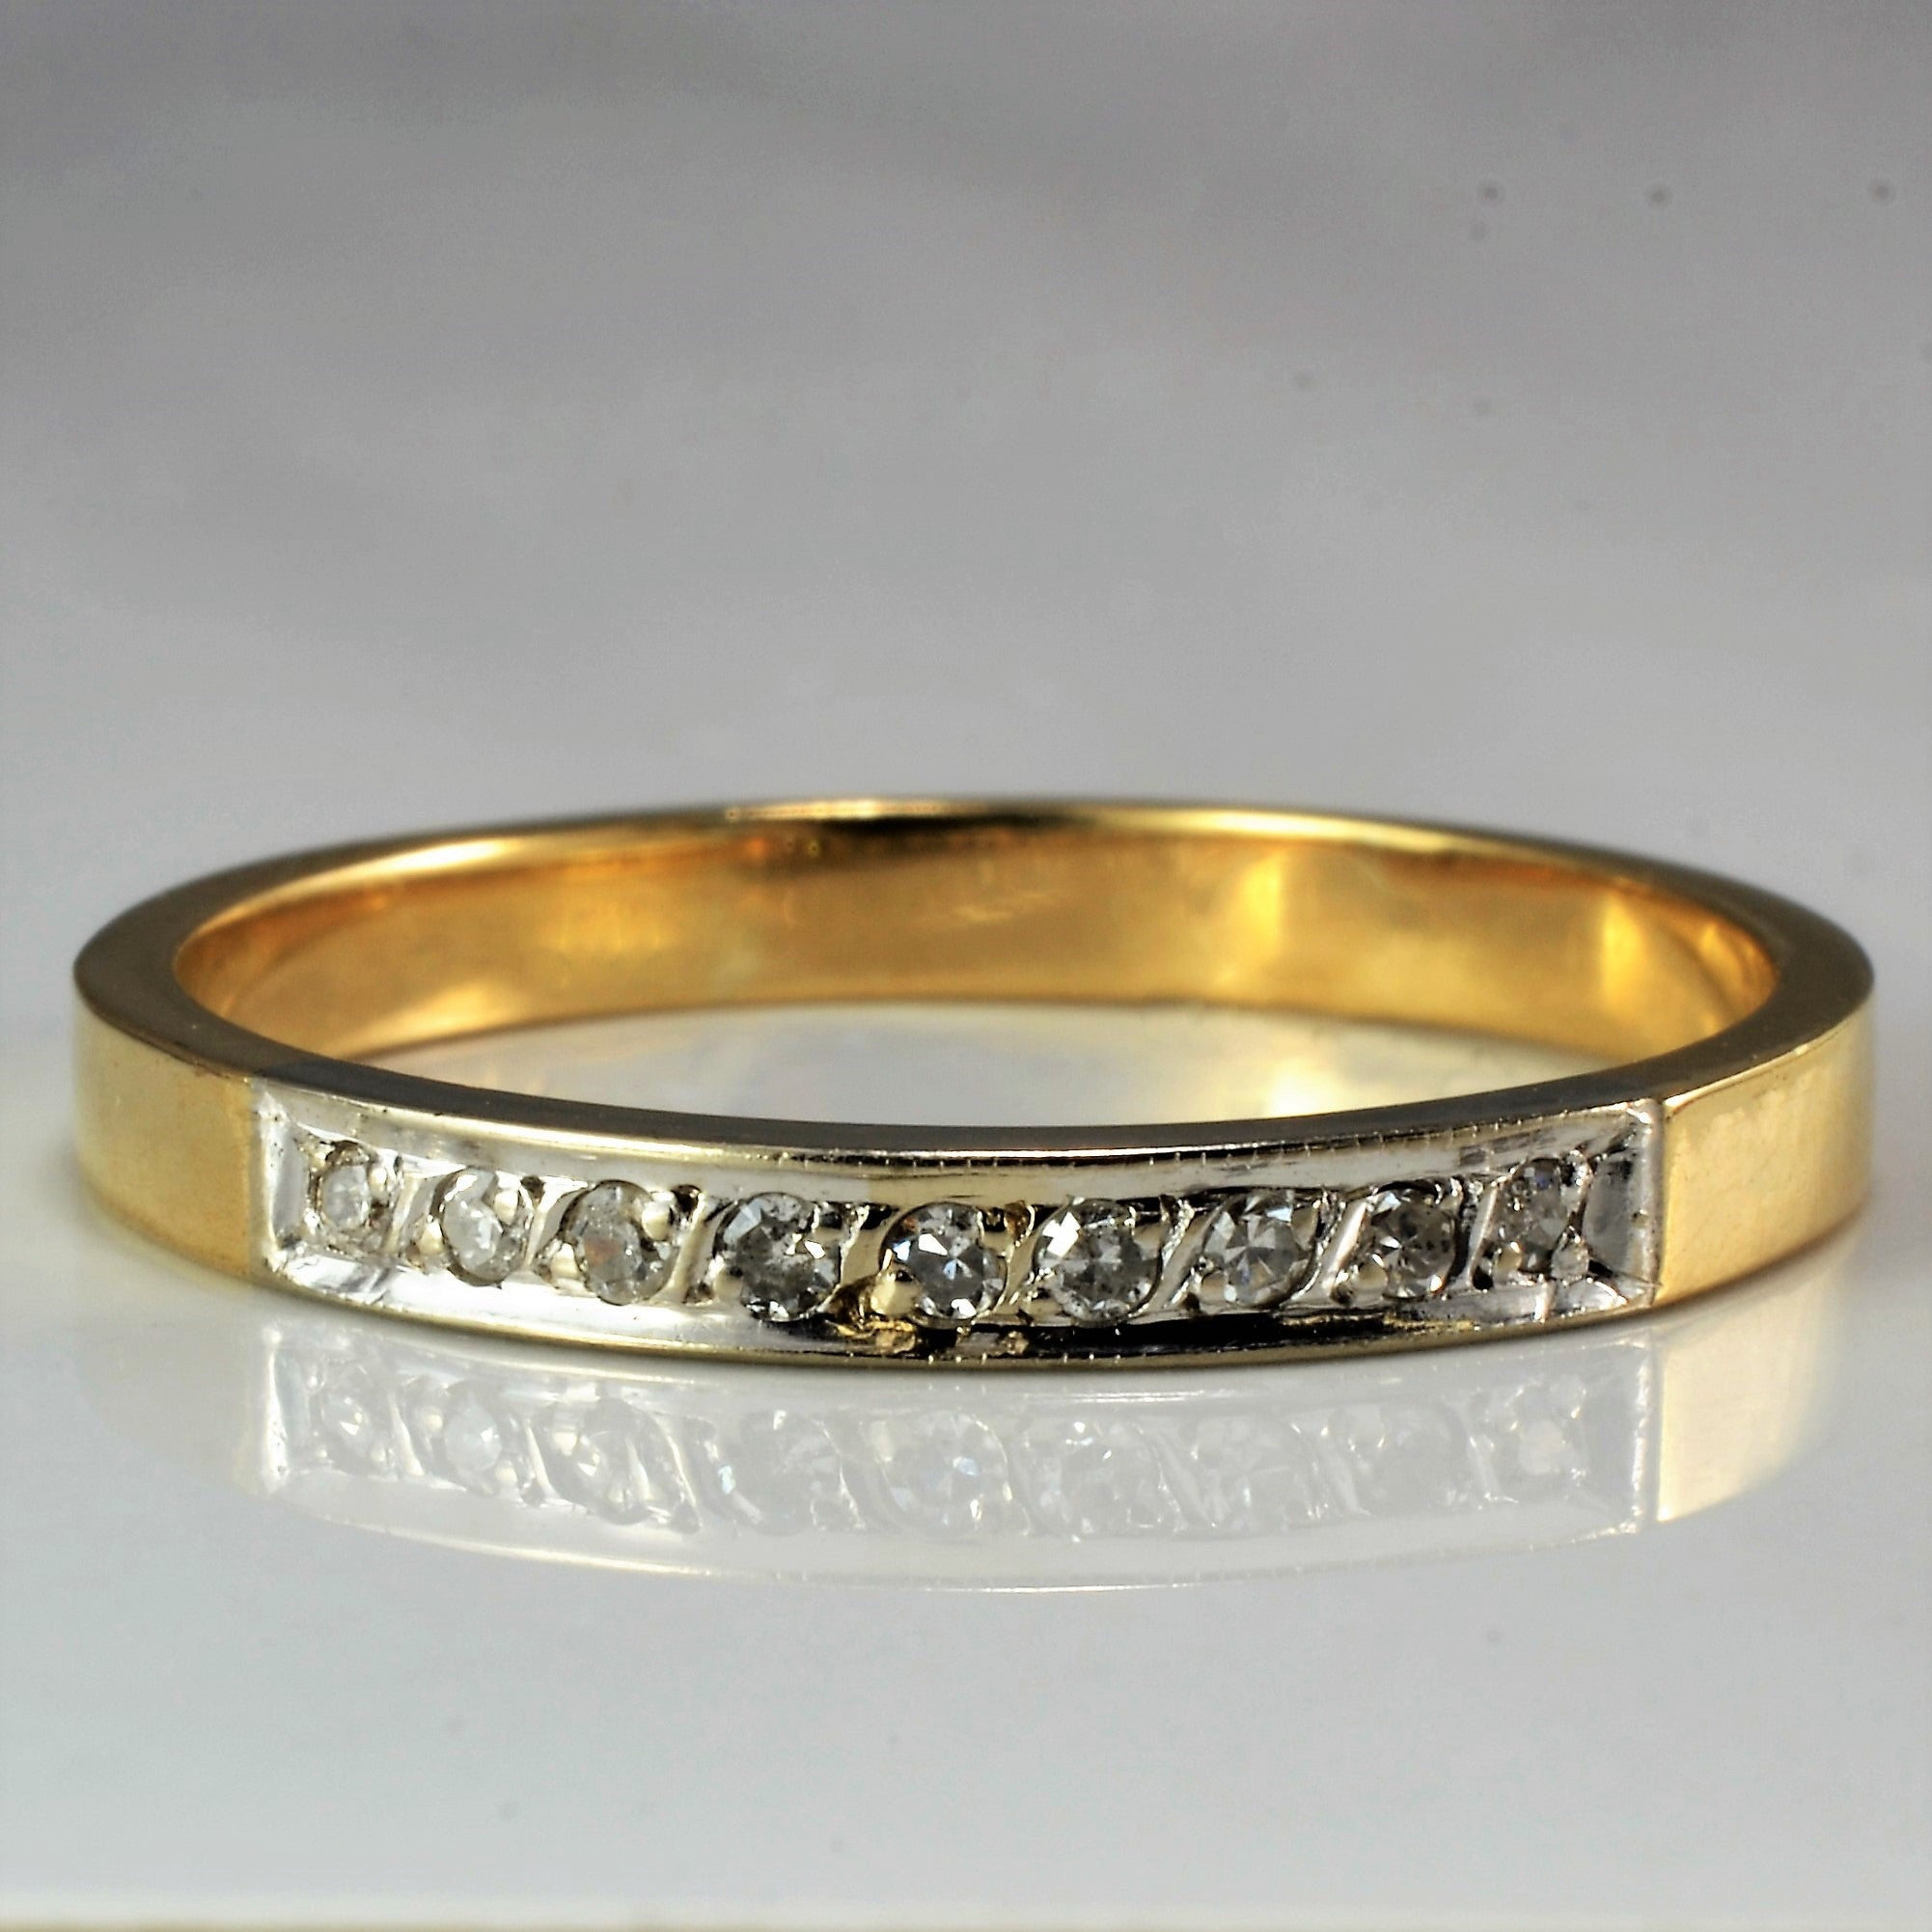 Two Tone Diamond Wedding Band | 0.04 ctw, SZ 9.75 |